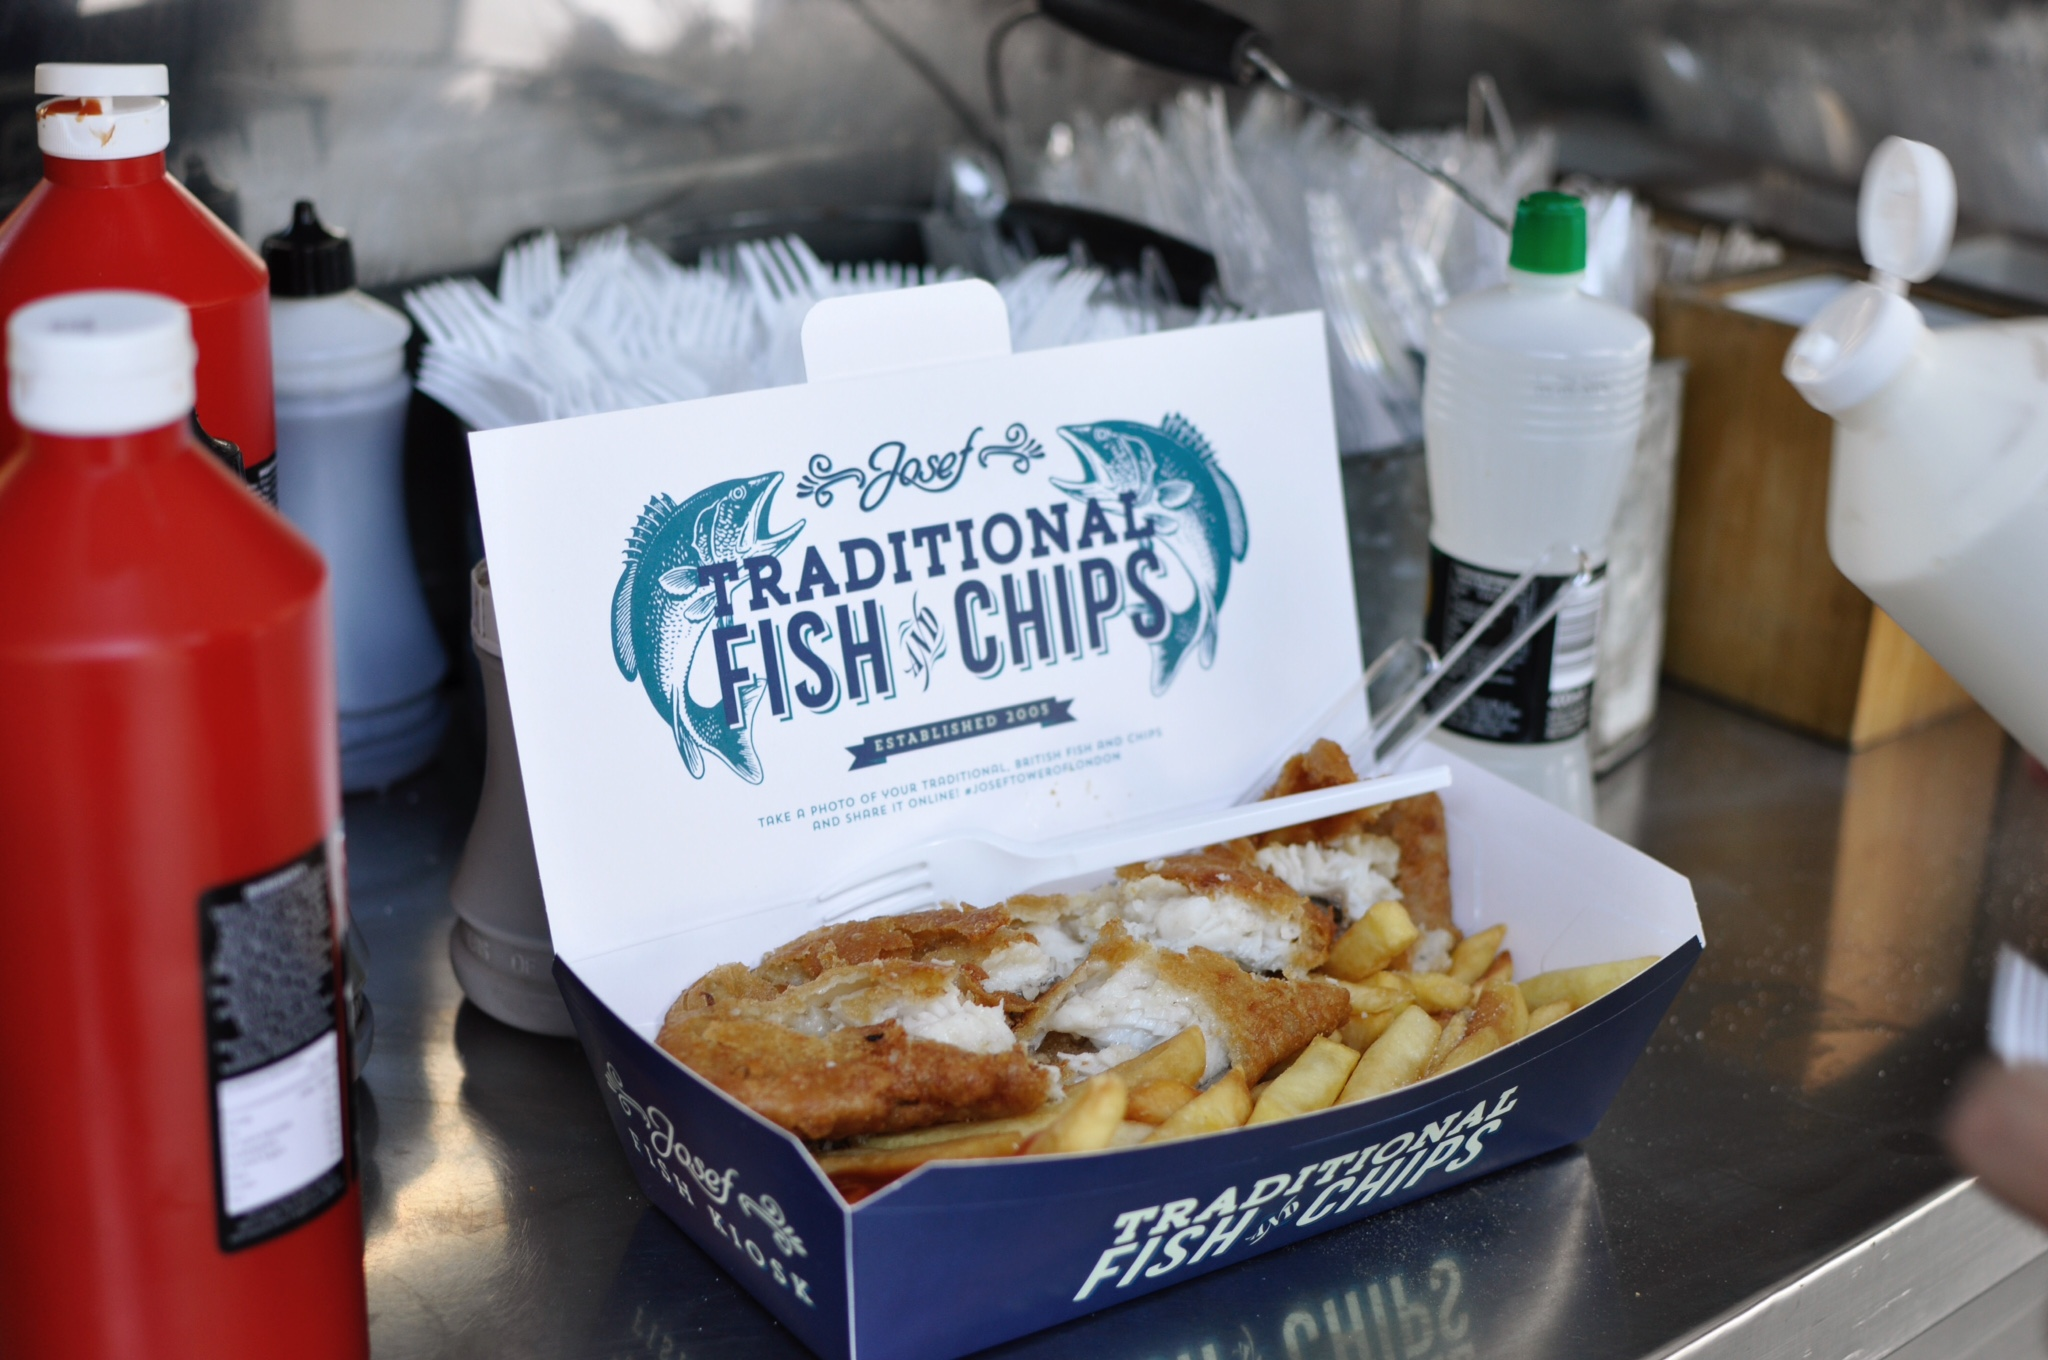 londres fish and chips miss saturday